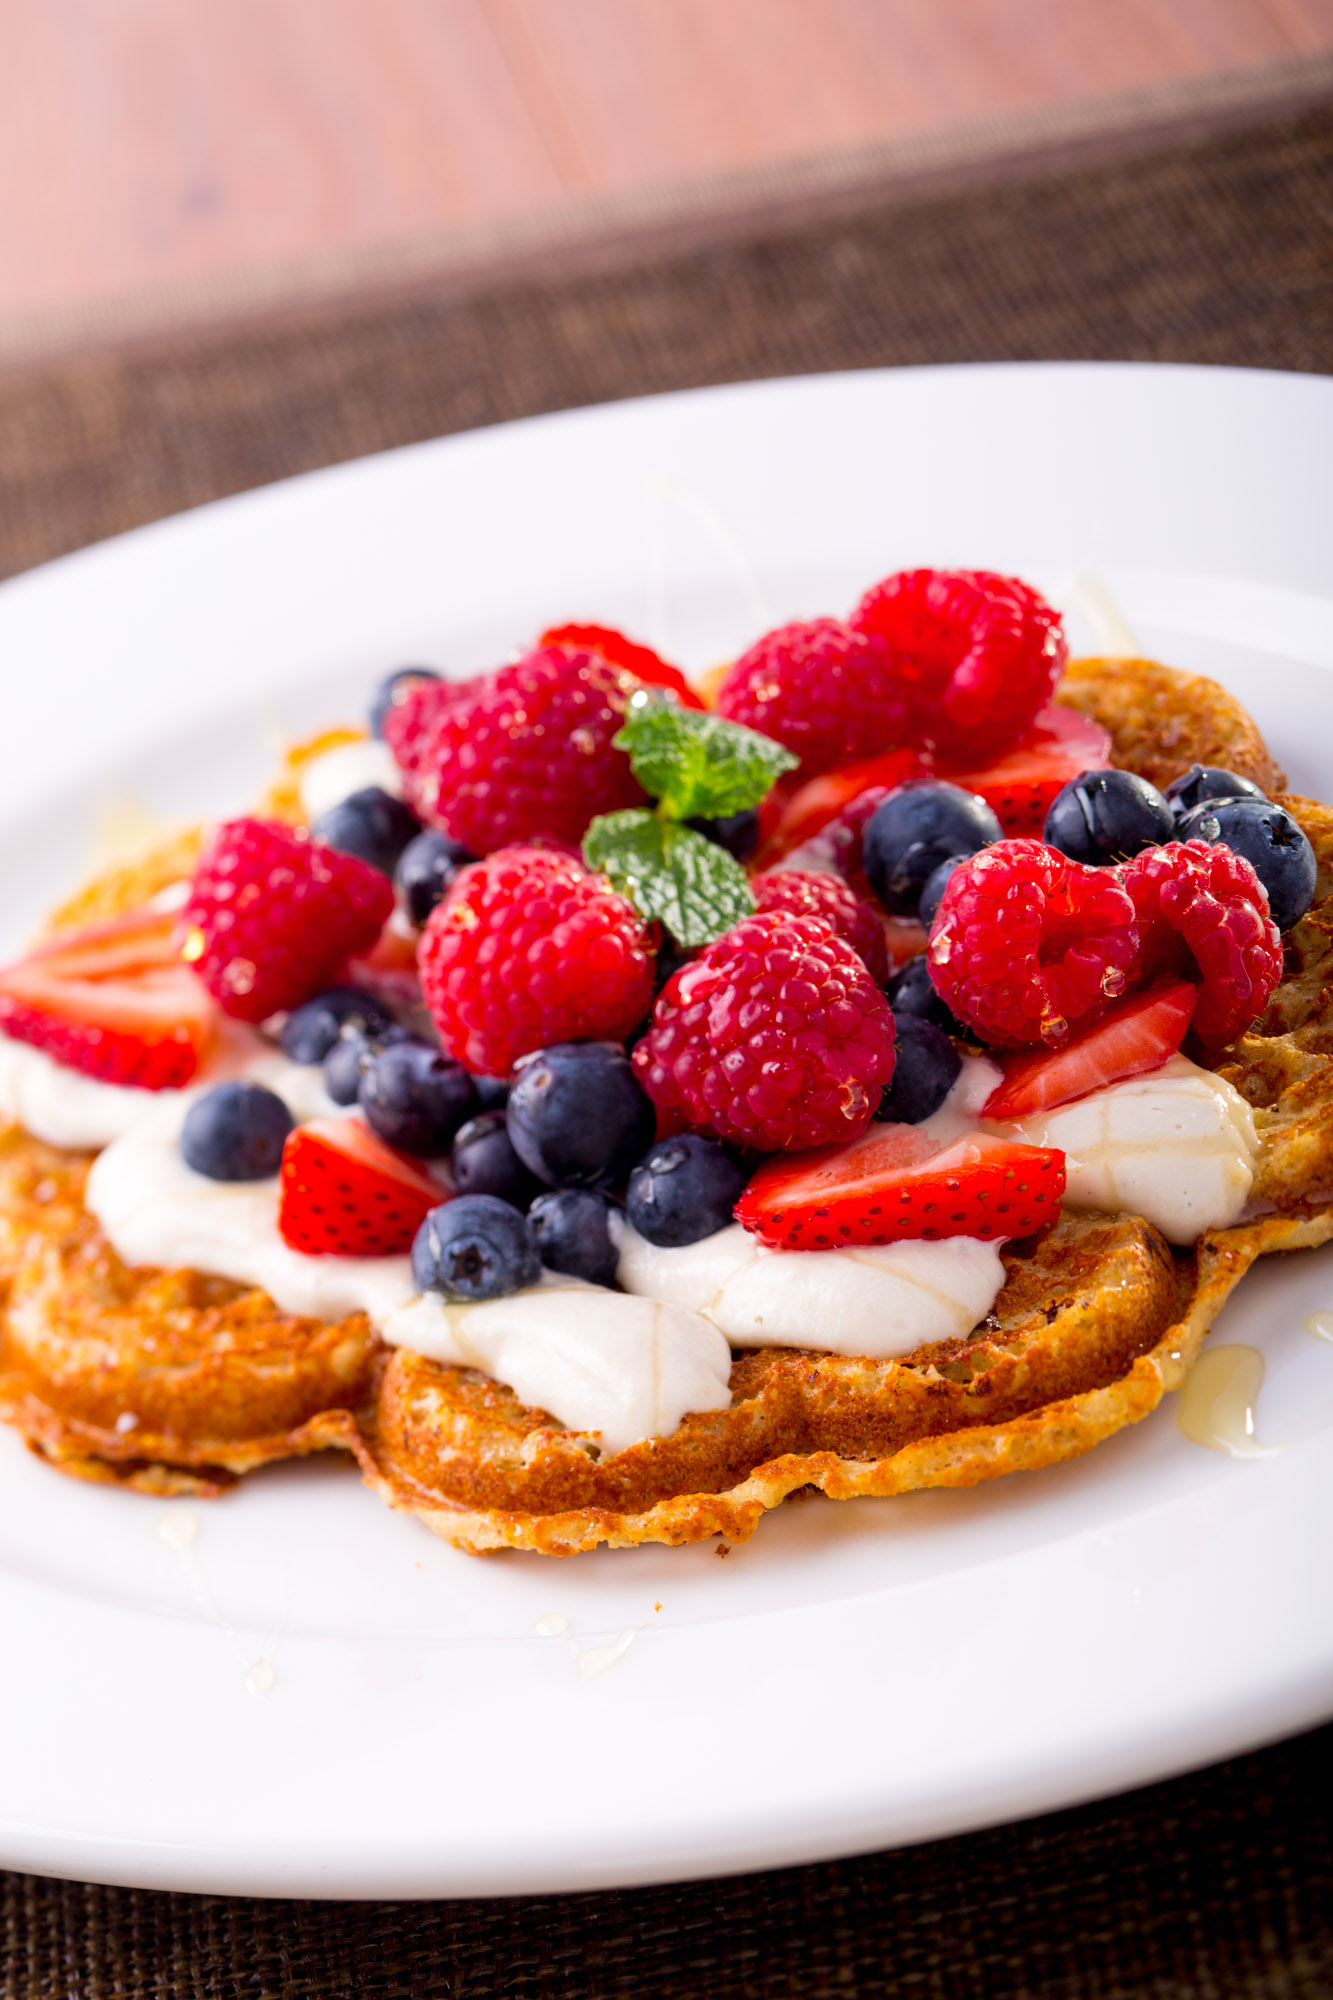 Oat waffles with wild berries